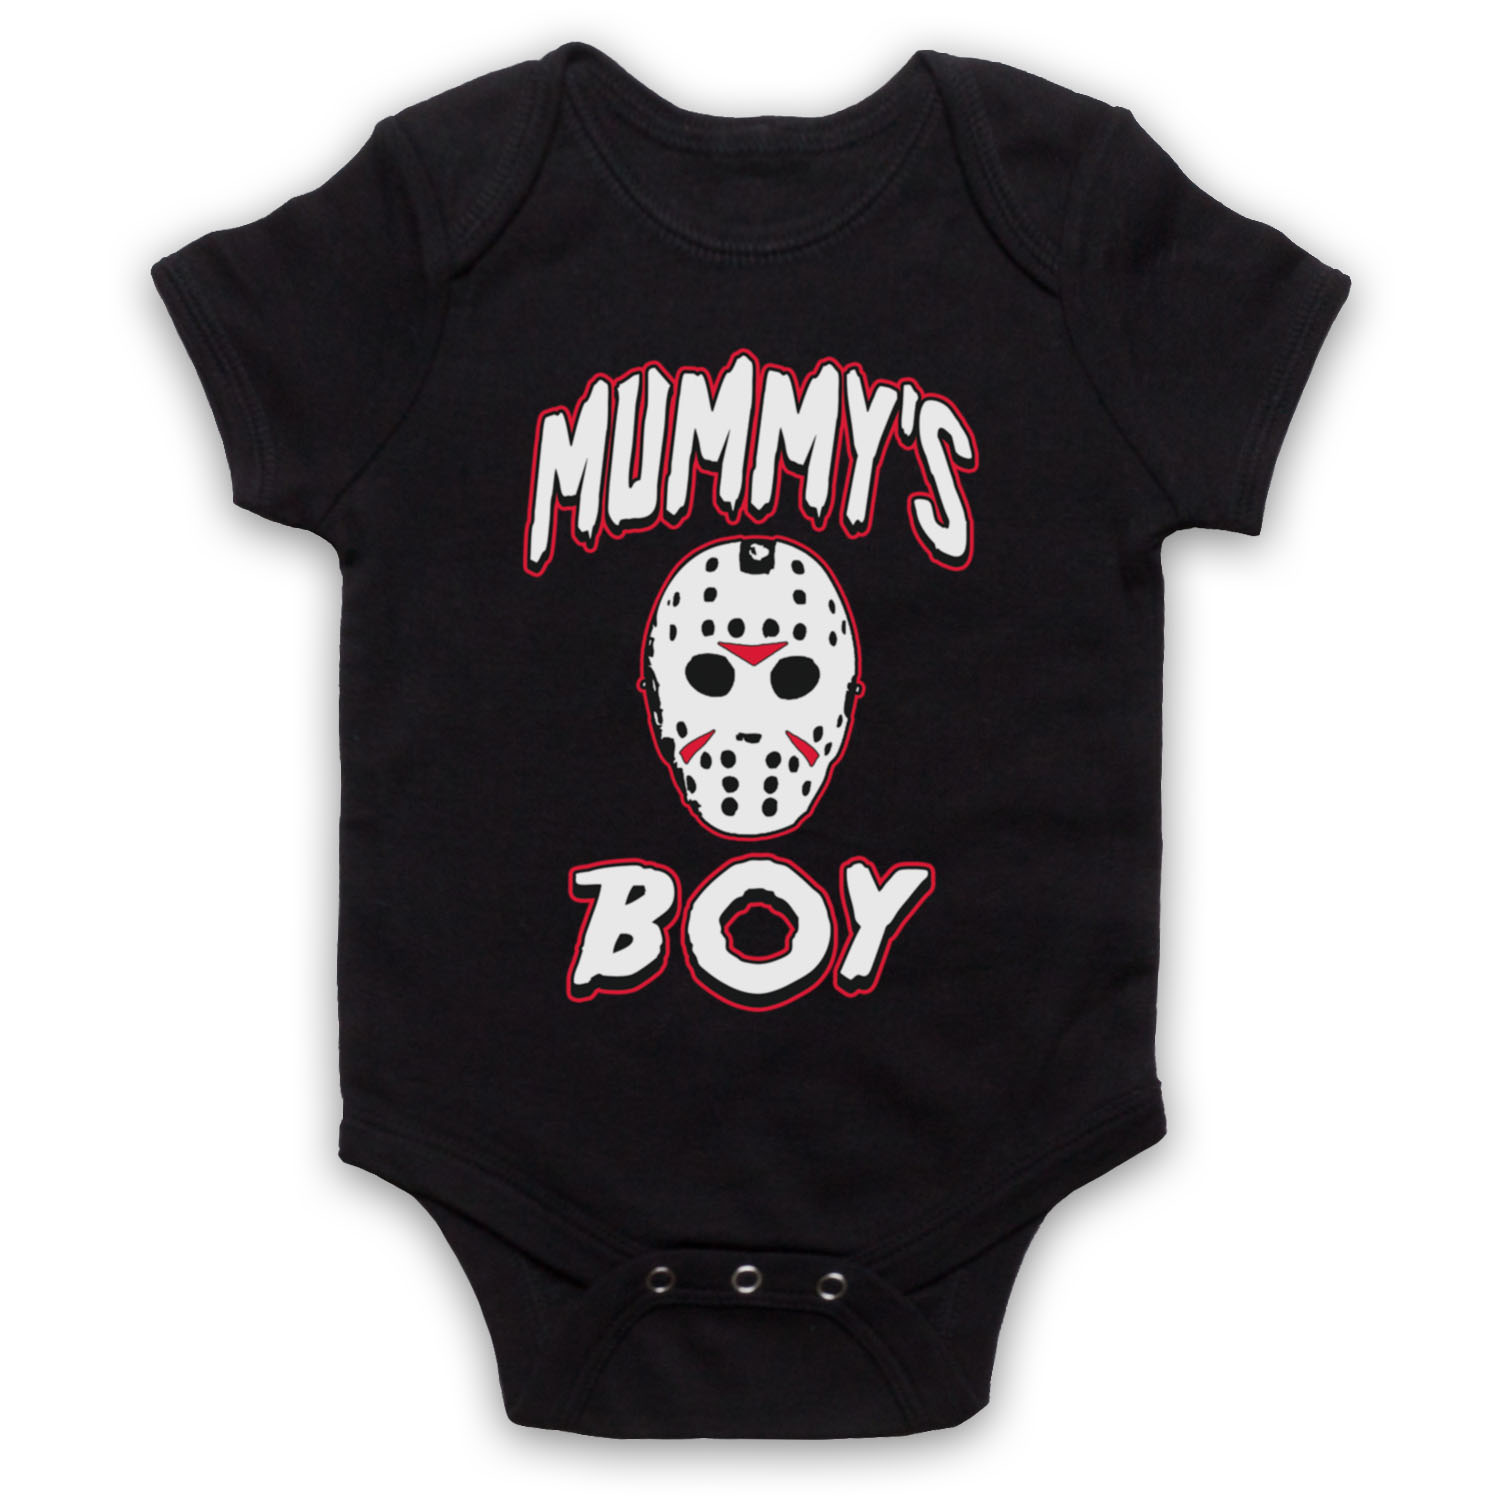 Jason Voorhees Baby Clothes Newest and Cutest Baby Clothing